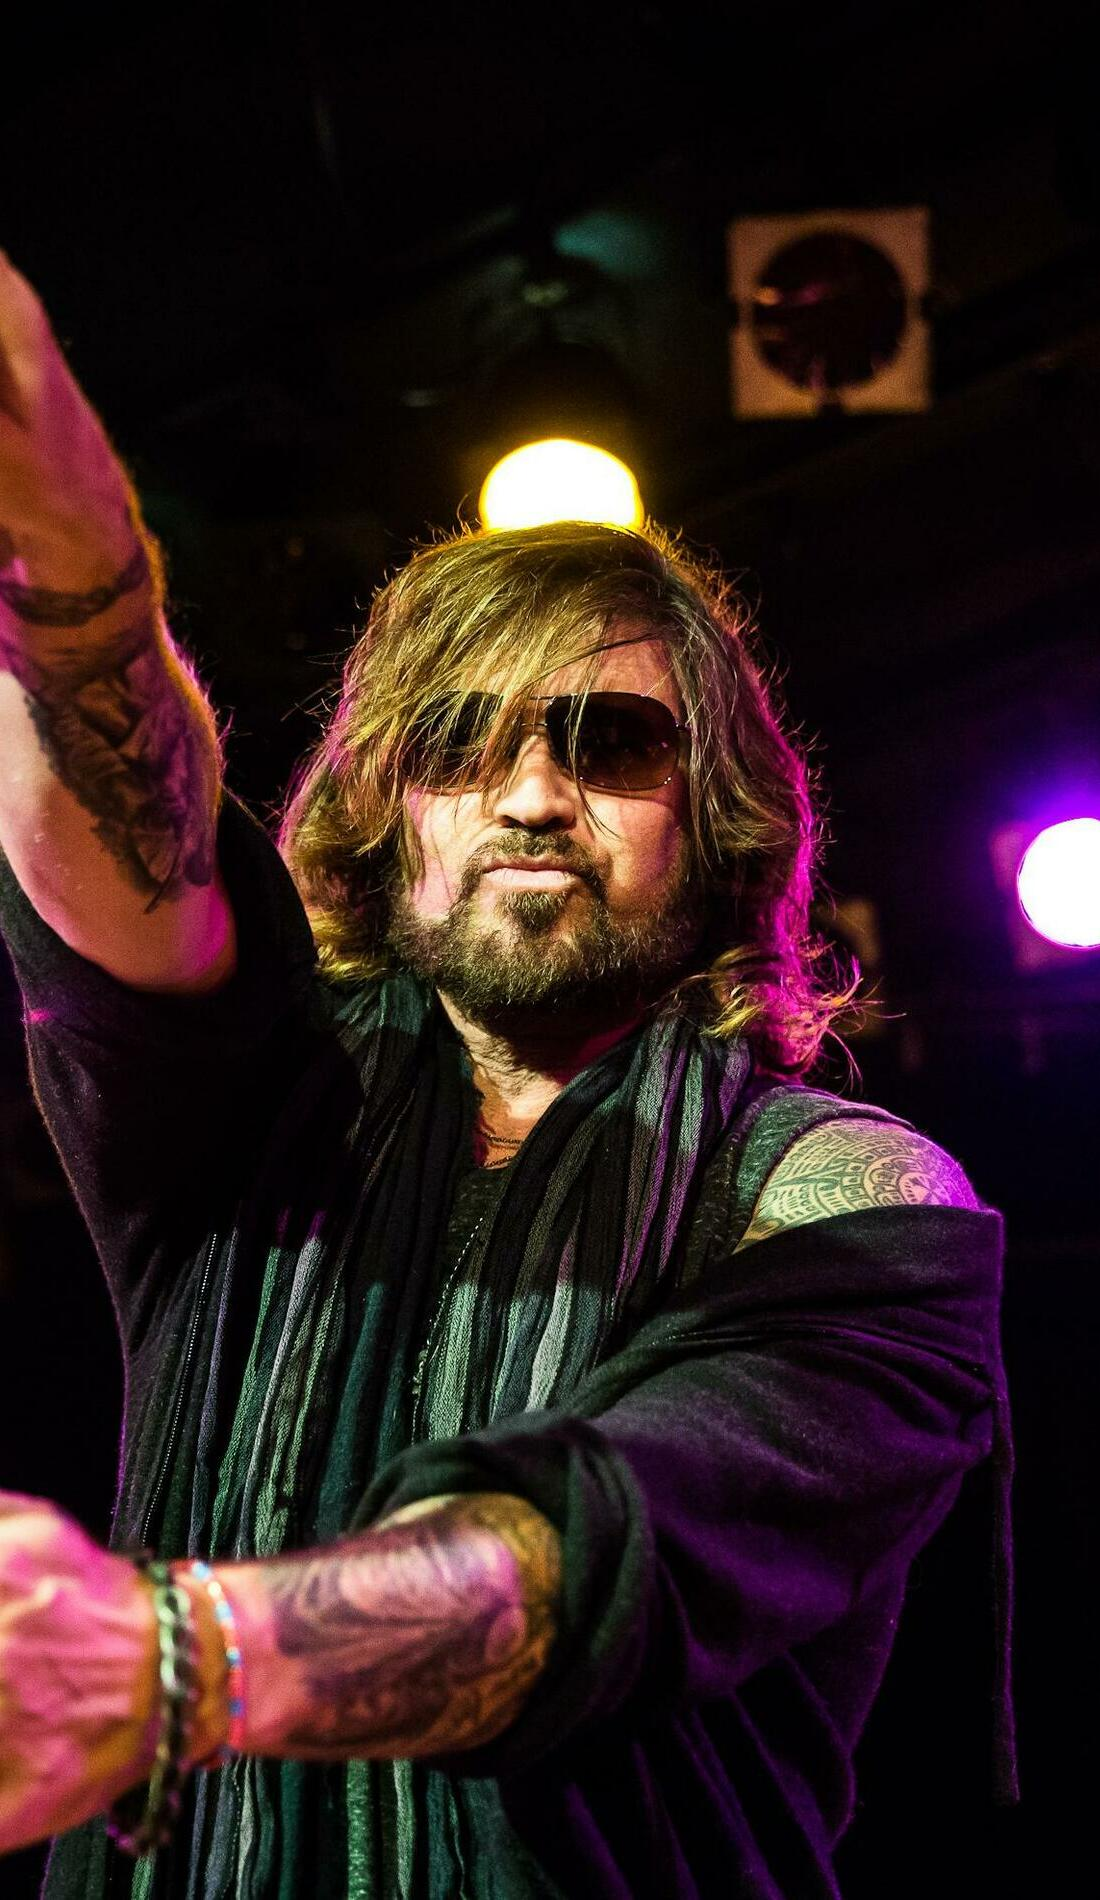 A Billy Ray Cyrus live event